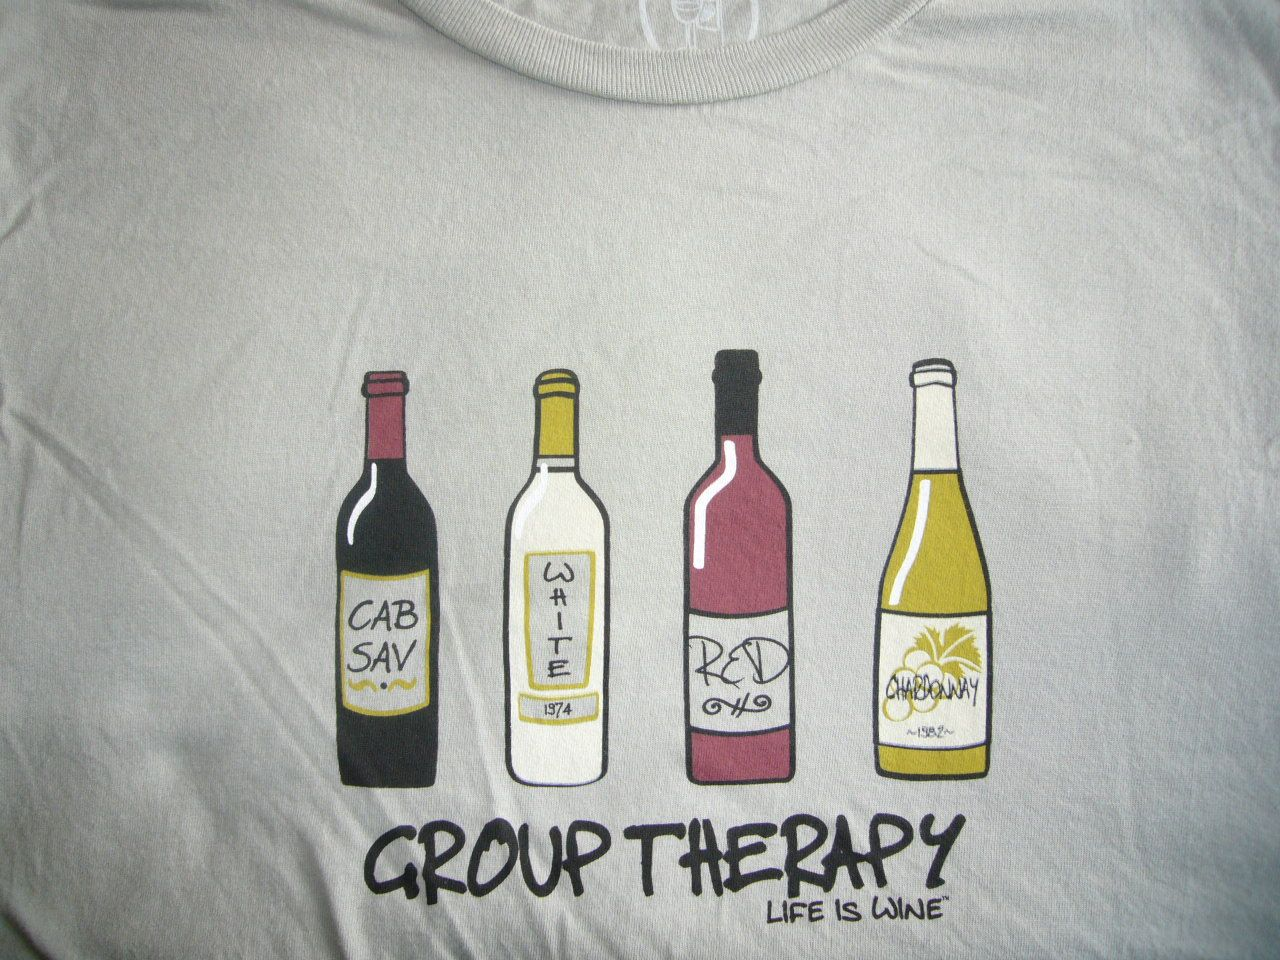 life is wine group therapy l funny t shirts pinterest. Black Bedroom Furniture Sets. Home Design Ideas